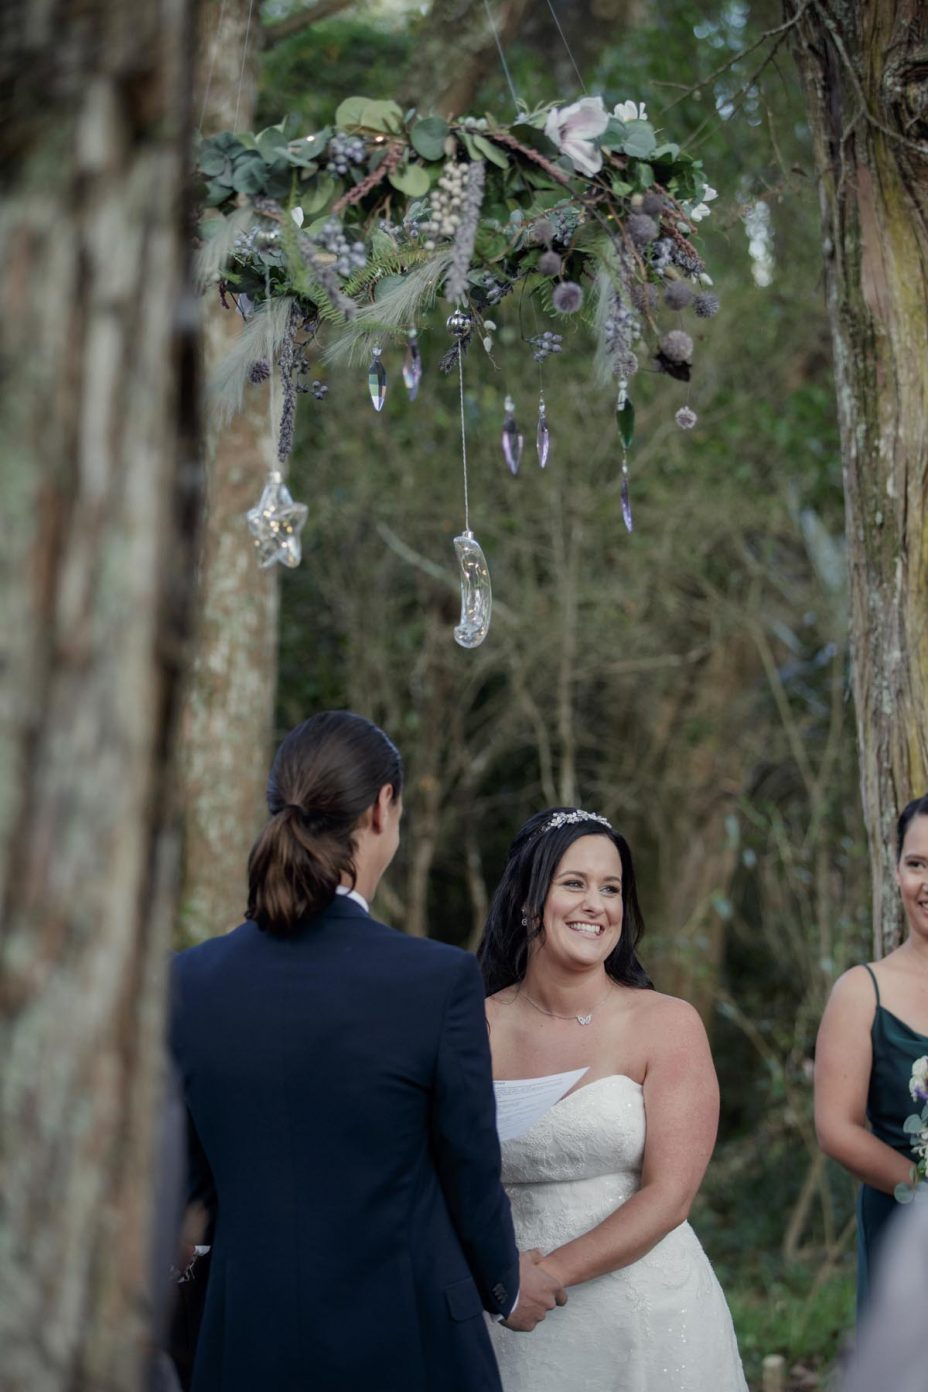 Bride and groom make their wedding vows during ceremony at Kumeu Valley Estate